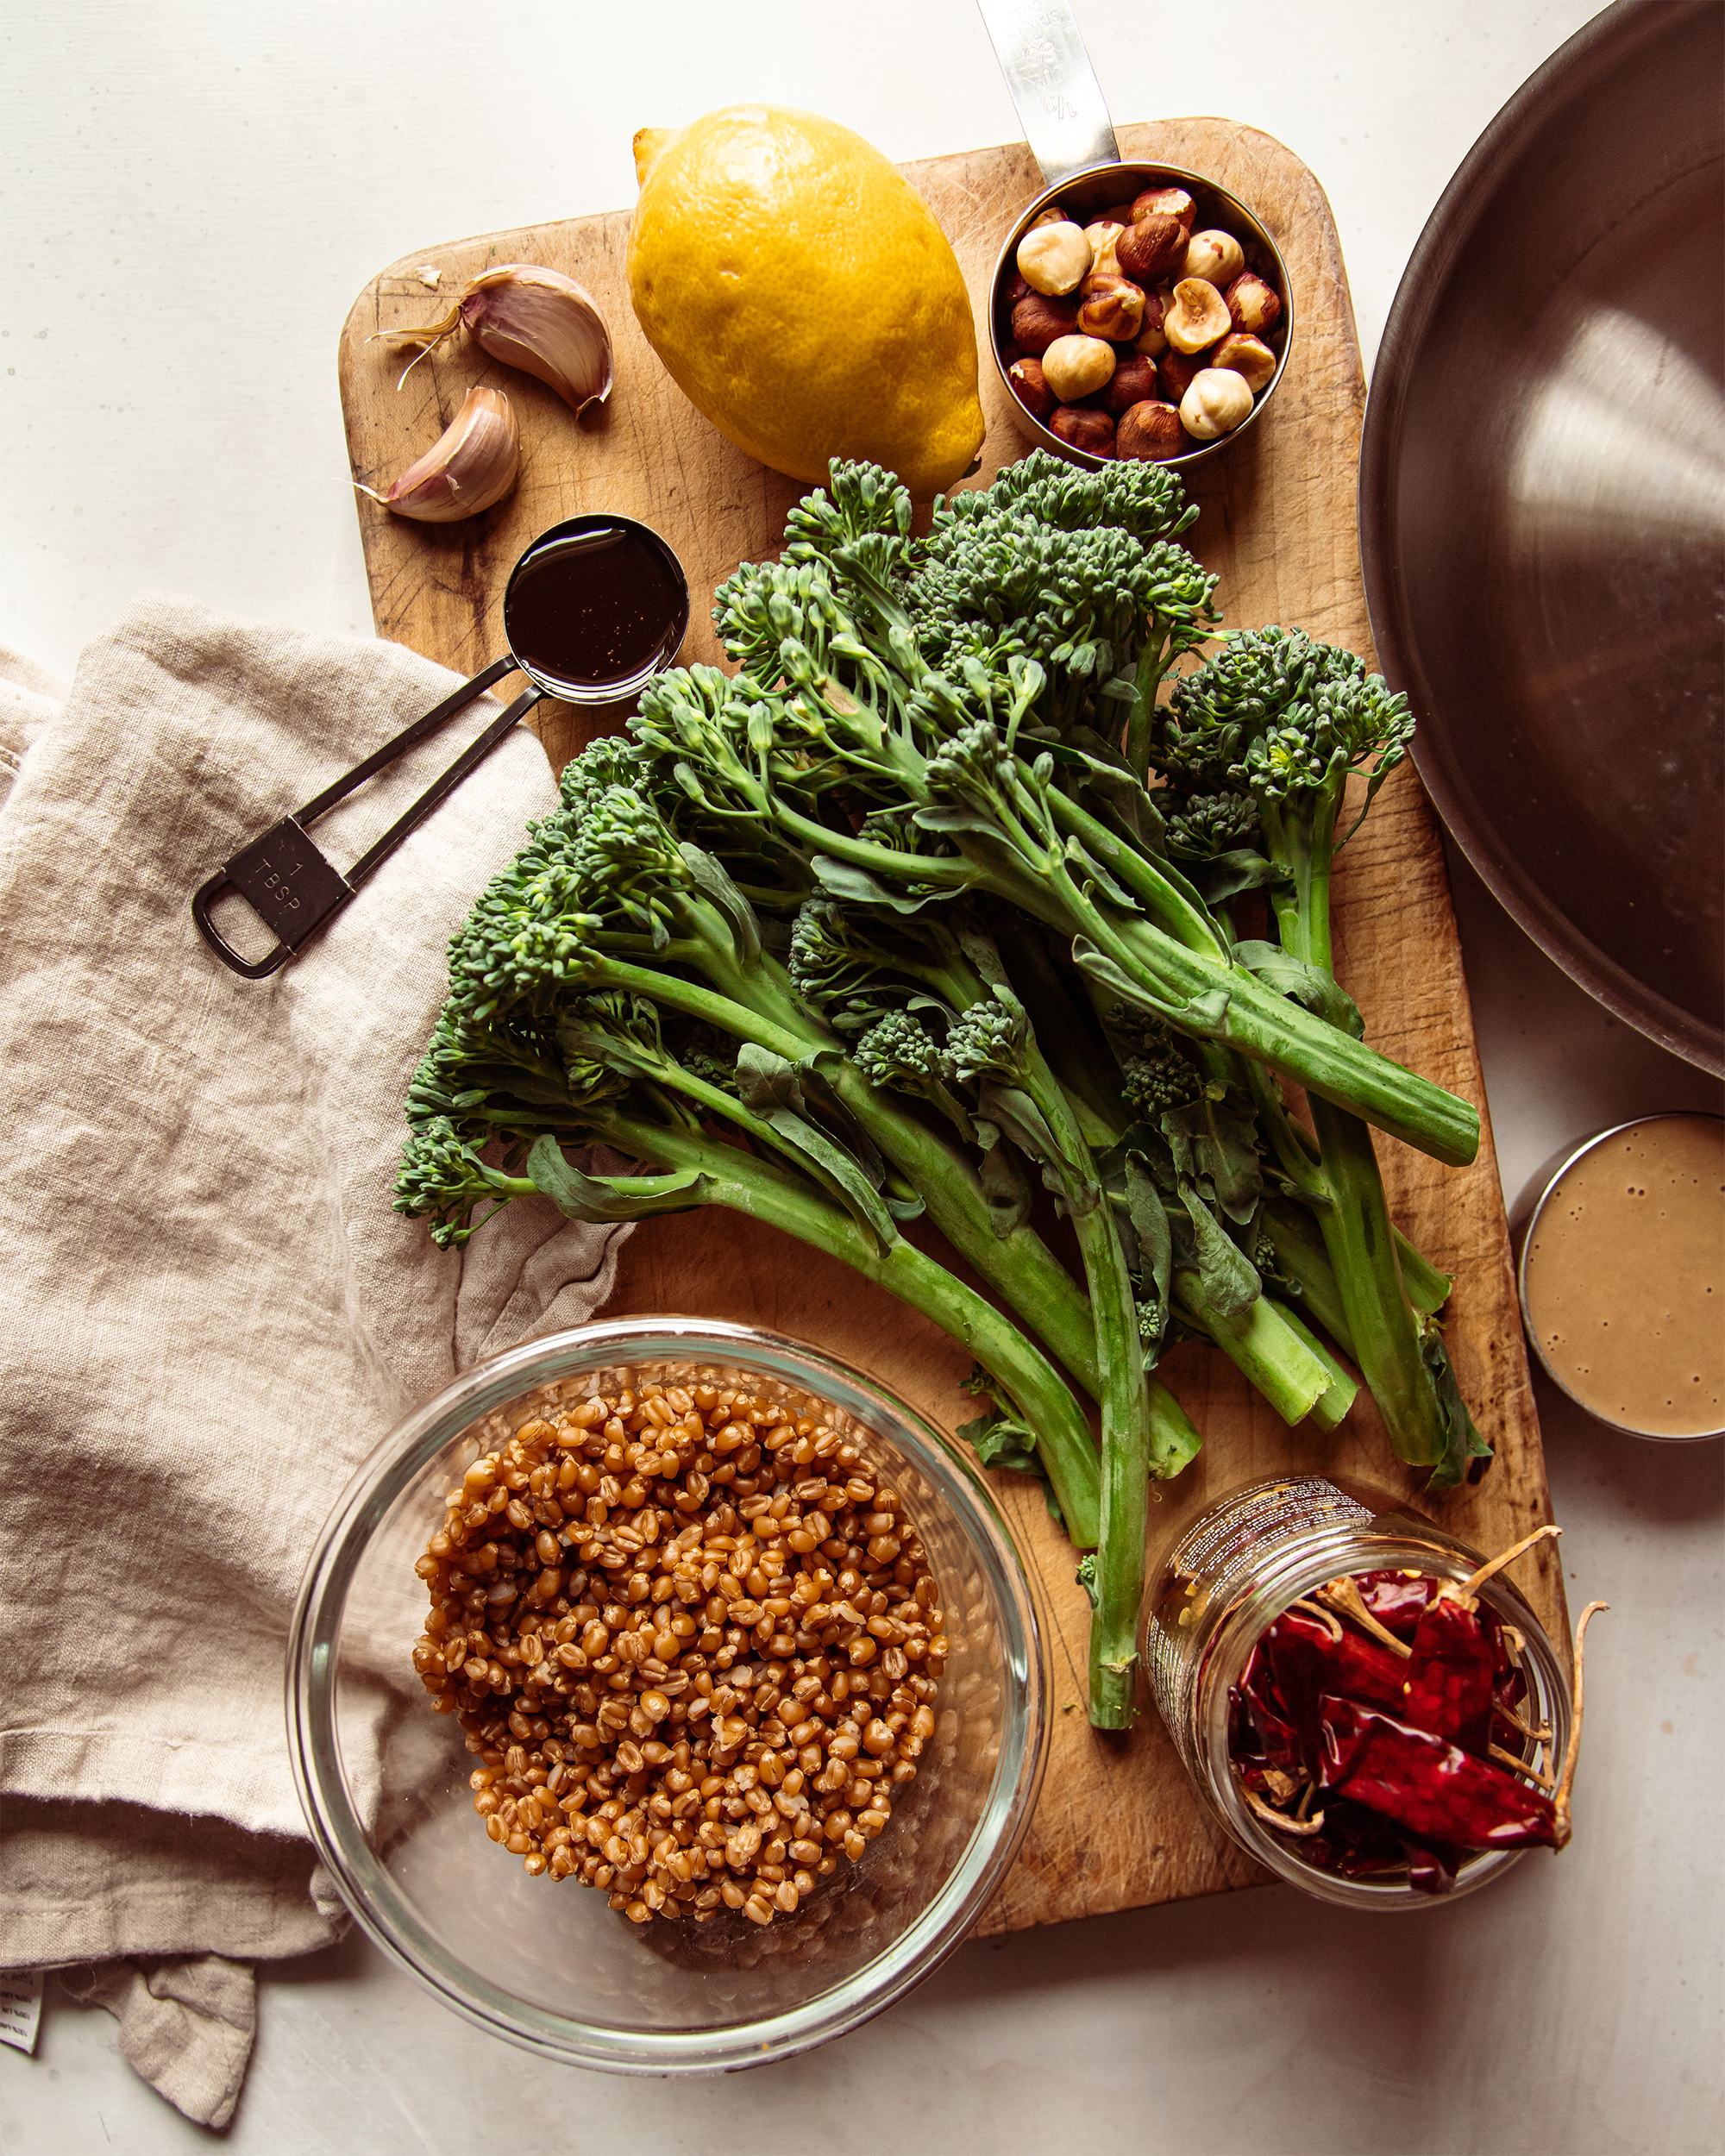 An overhead shot of ingredients for a vegetable dish.